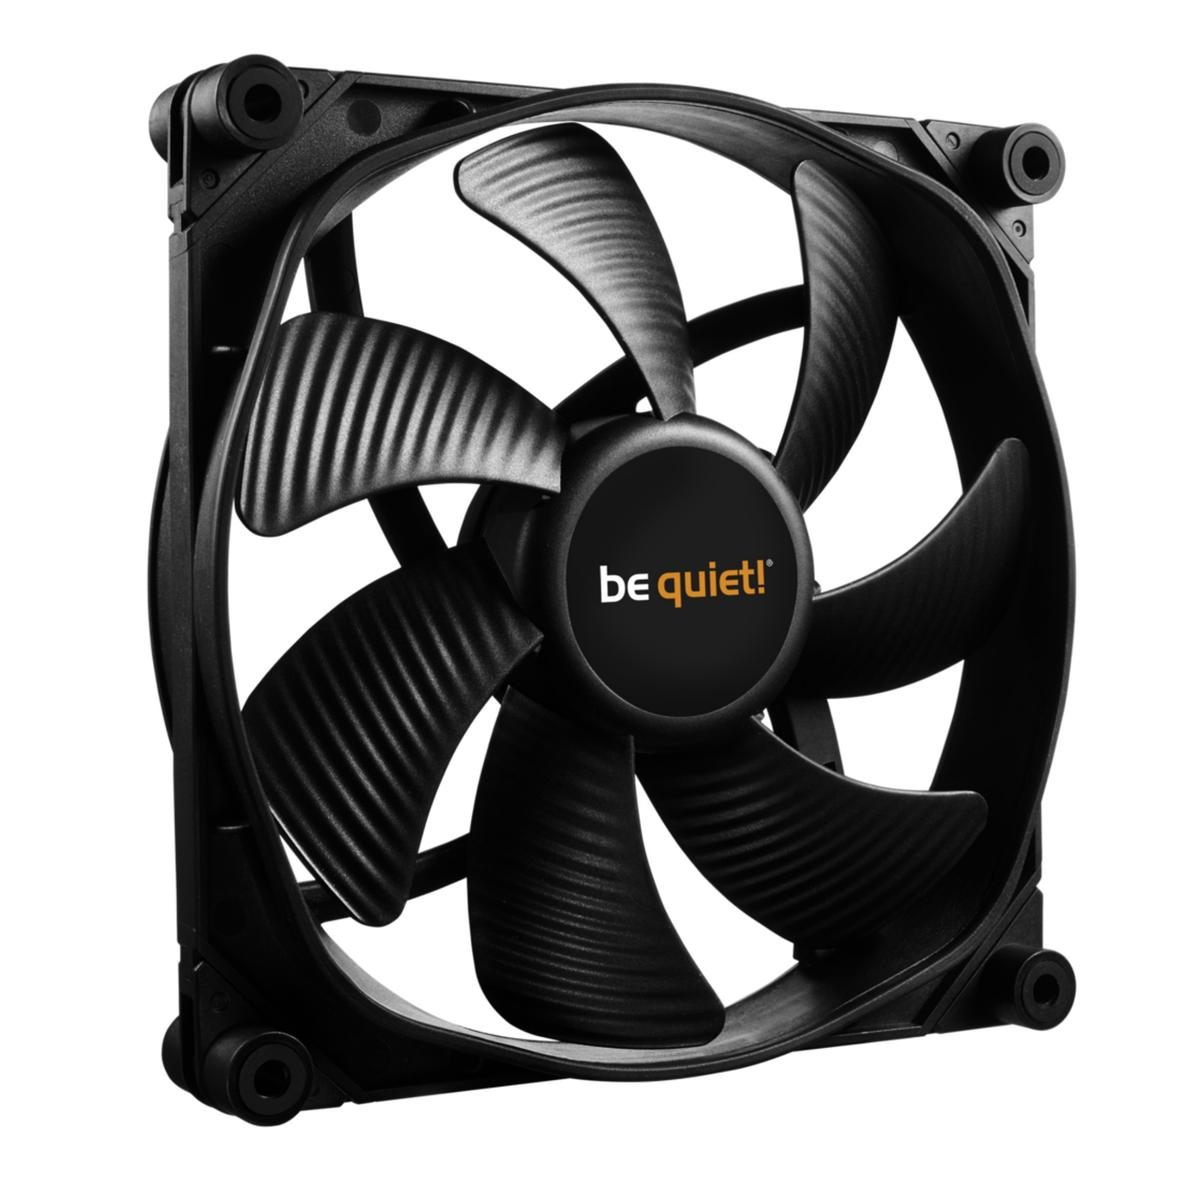 be quiet! SilentWings 3 PWM High-Speed 77.57 CFM 140 mm Fan